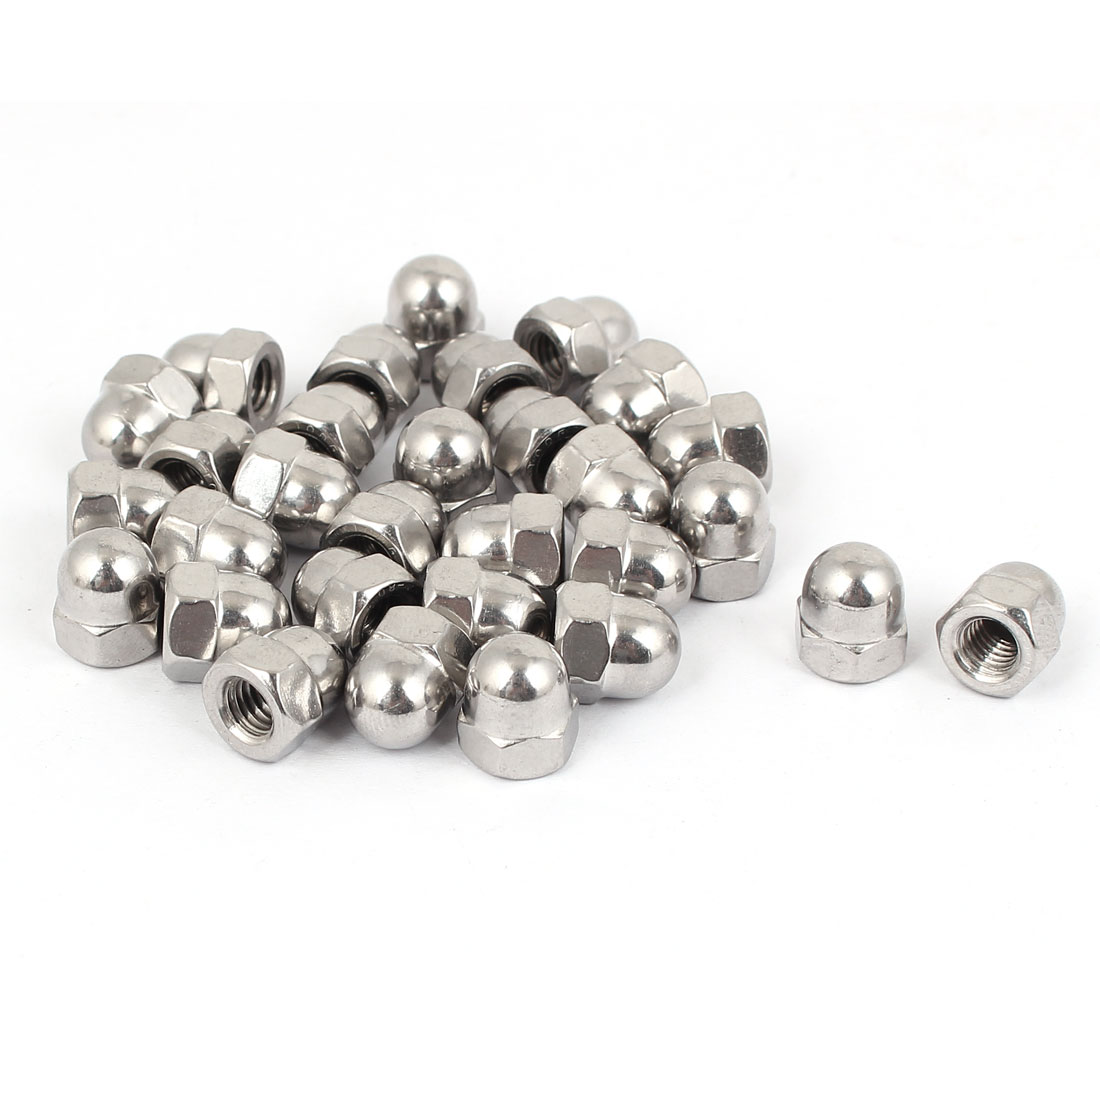 M6 Thread Dia Dome Head 316 Stainless Steel Cap Acorn Hex Nuts 30pcs